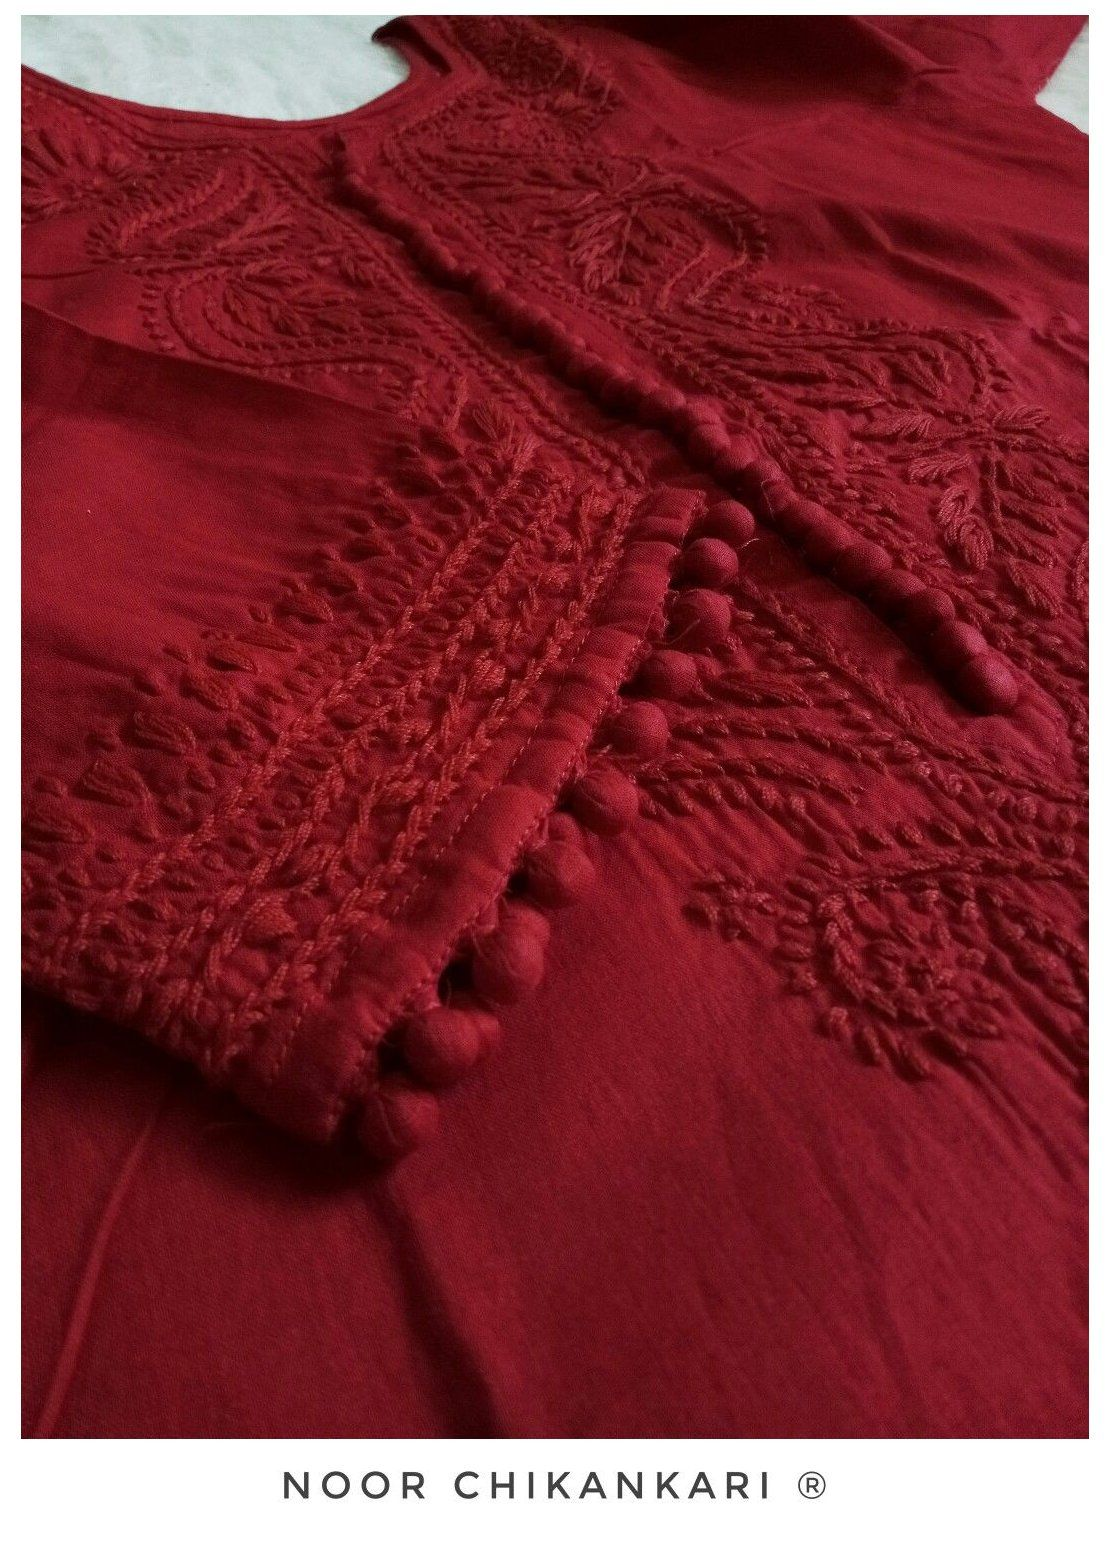 Login Chikankari Suits Party Wear Floral Motif Long Red Cotton Kurta With Red Chikankar In 2020 Embroidery Designs Fashion Chikankari Suits Stylish Dress Designs